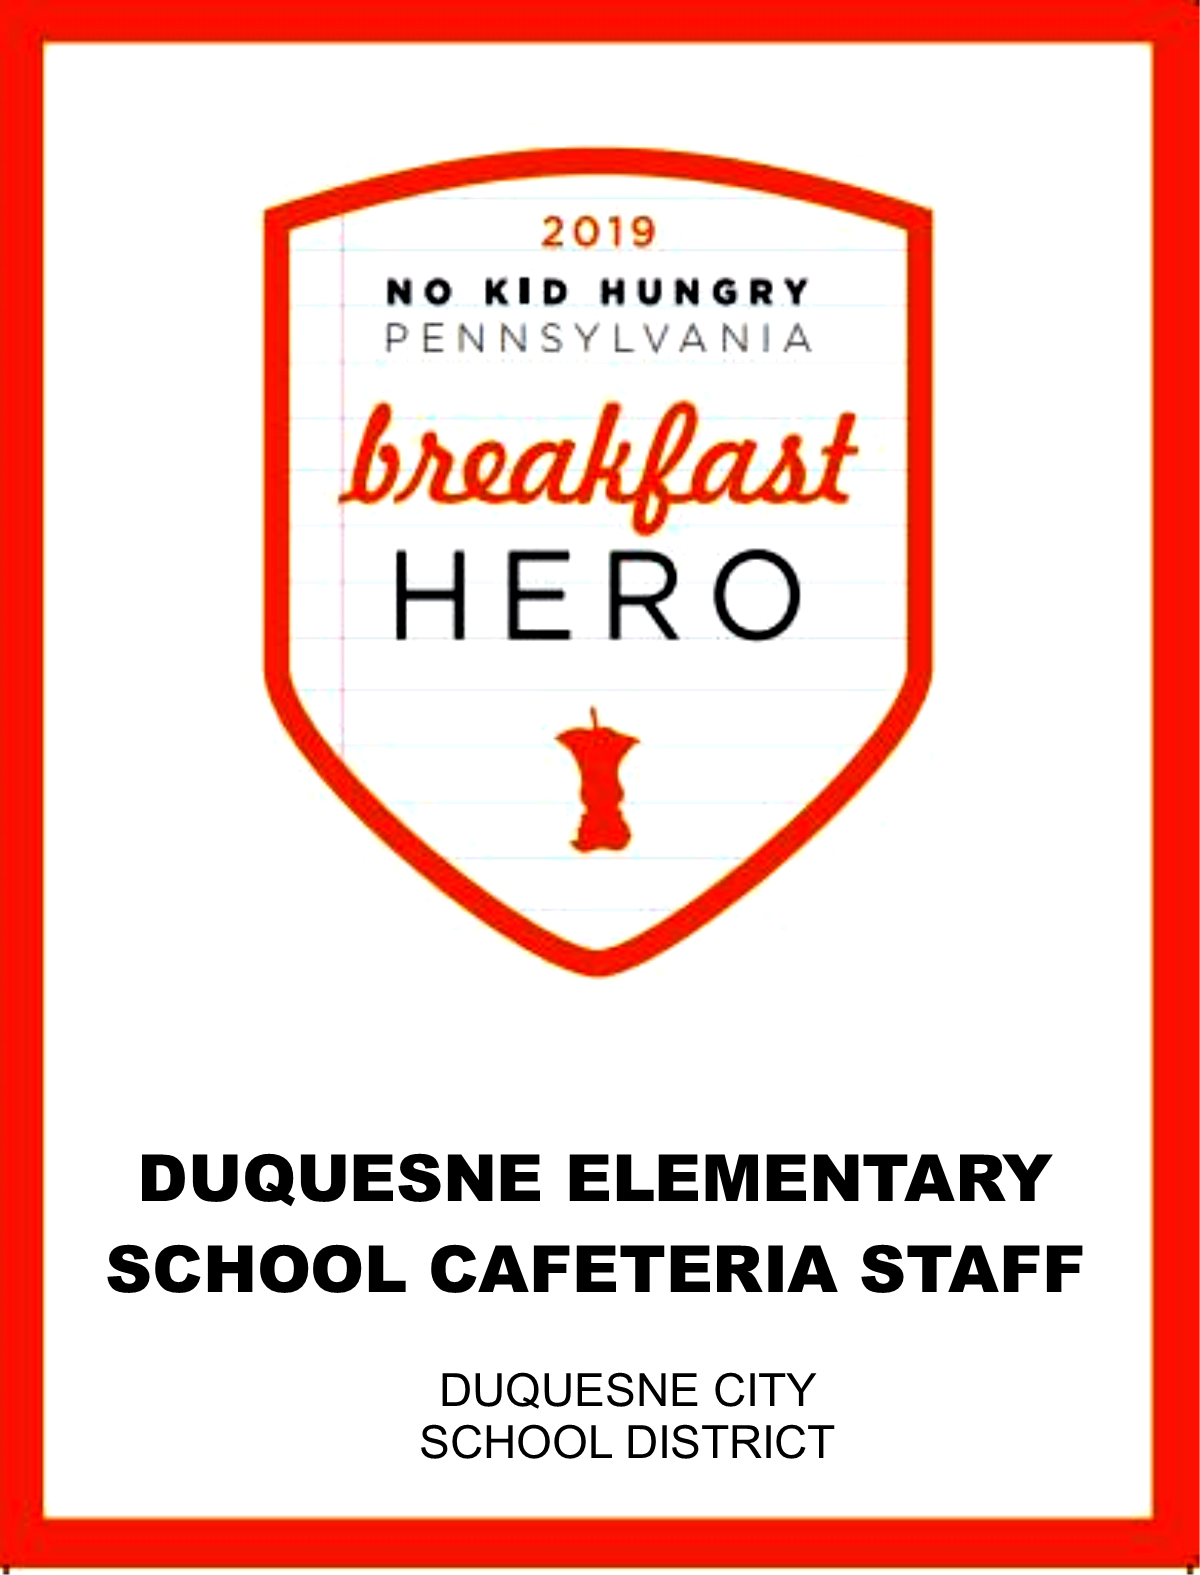 2019 No Child Hungary Breakfast Hero Award Duquesne Elementary Cafeteria Staff Duquesne City School District